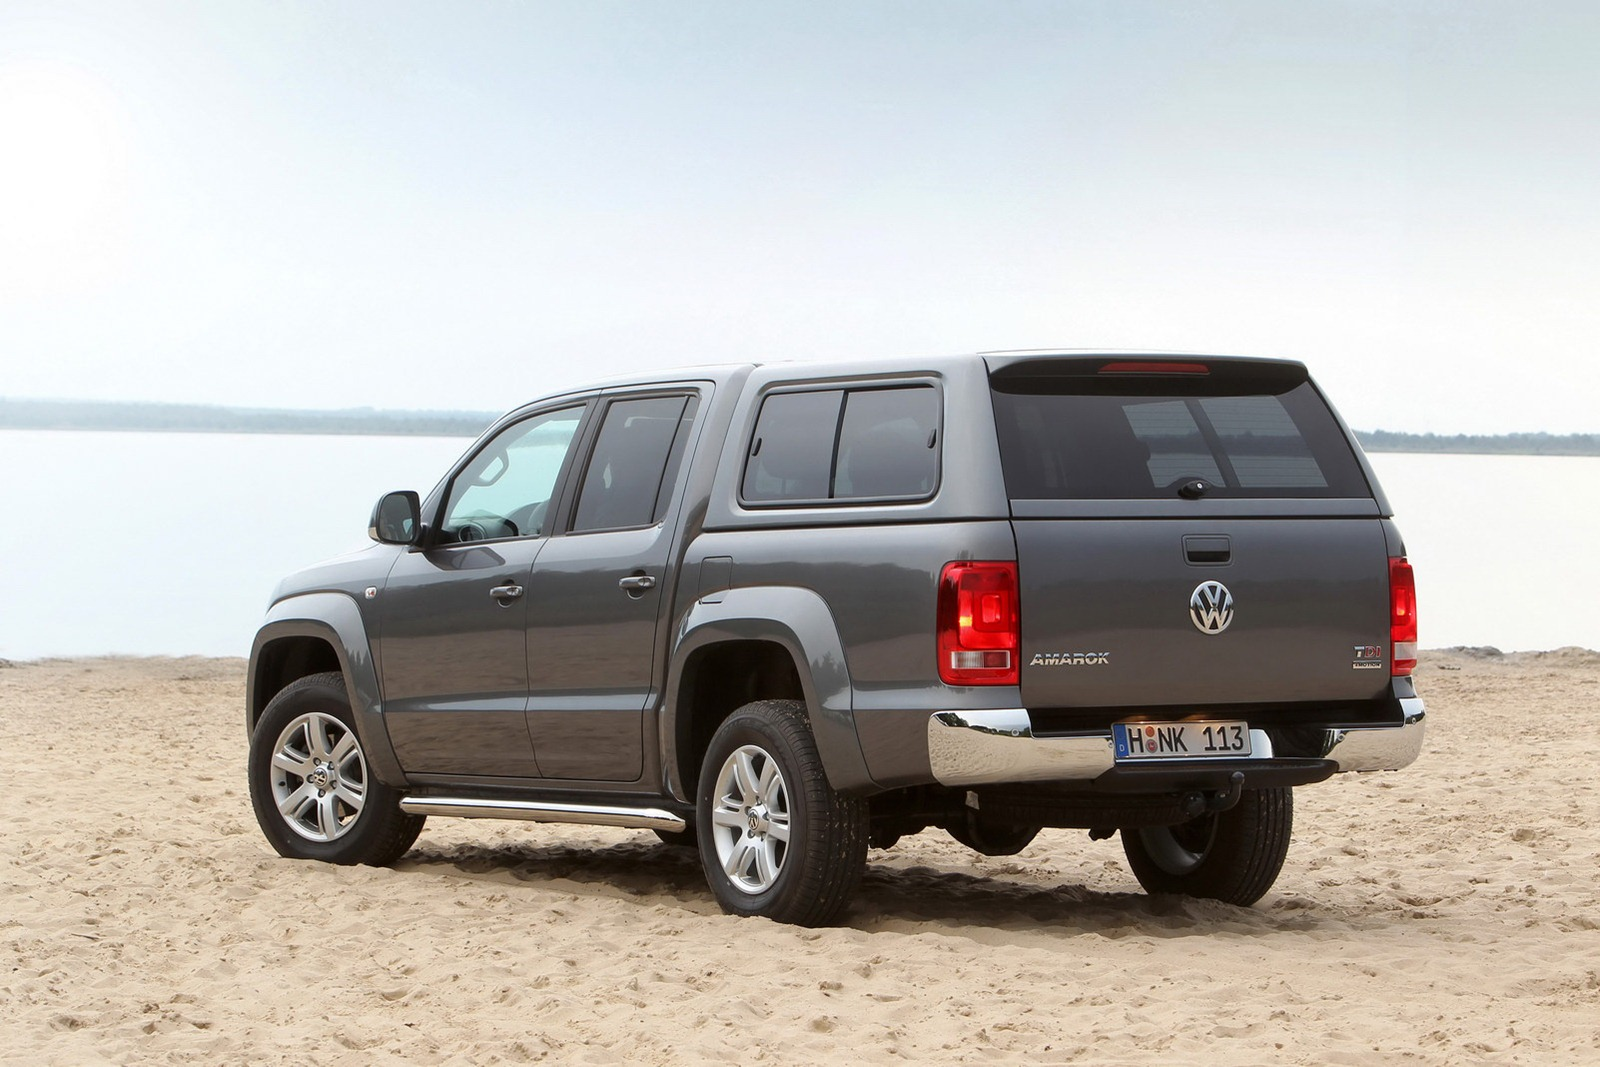 facelifted vw amarok reportedly coming in 2016 carscoops. Black Bedroom Furniture Sets. Home Design Ideas